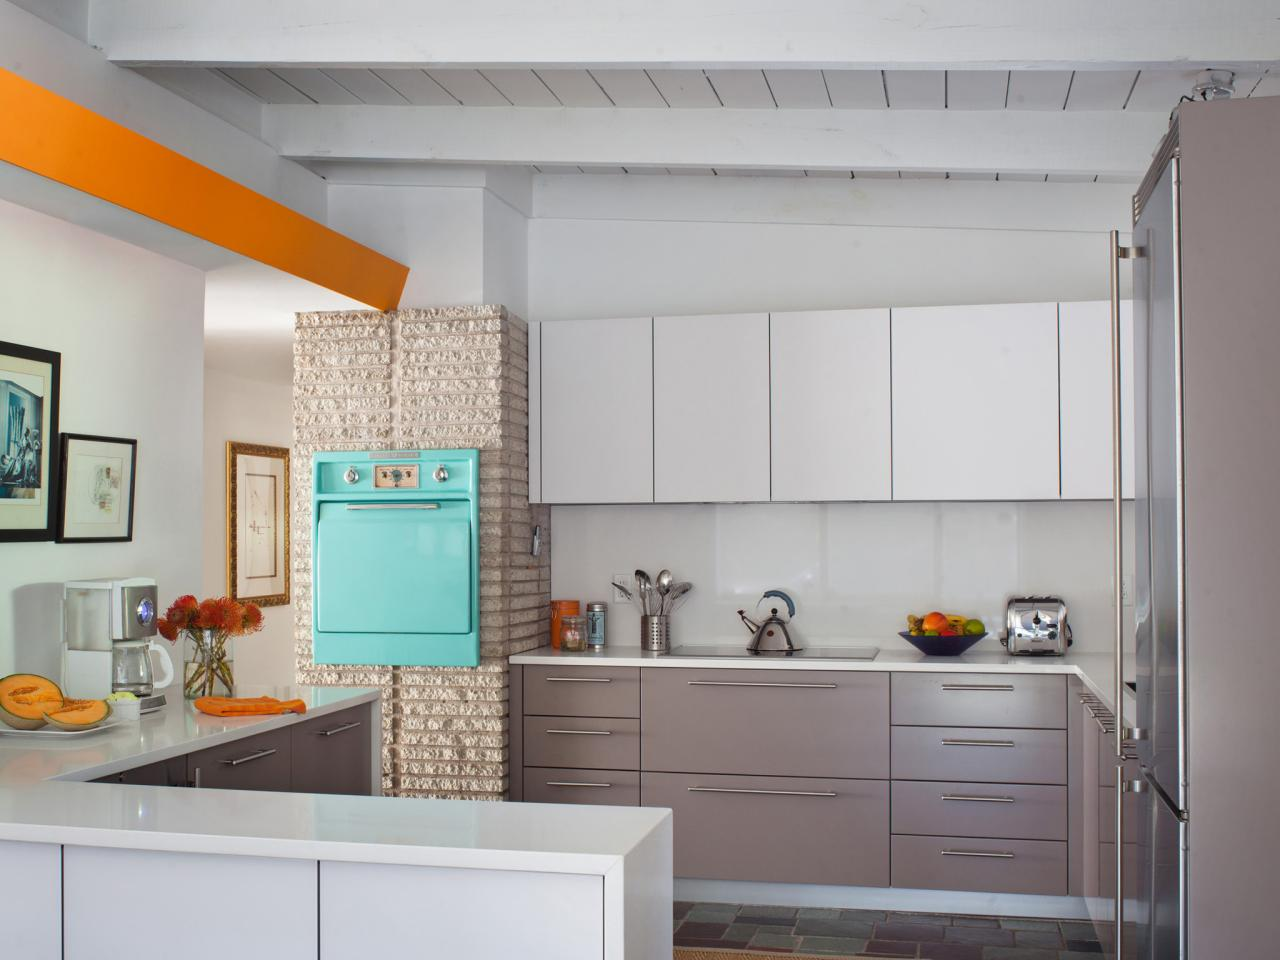 Midcentury Modern Kitchens | HGTV